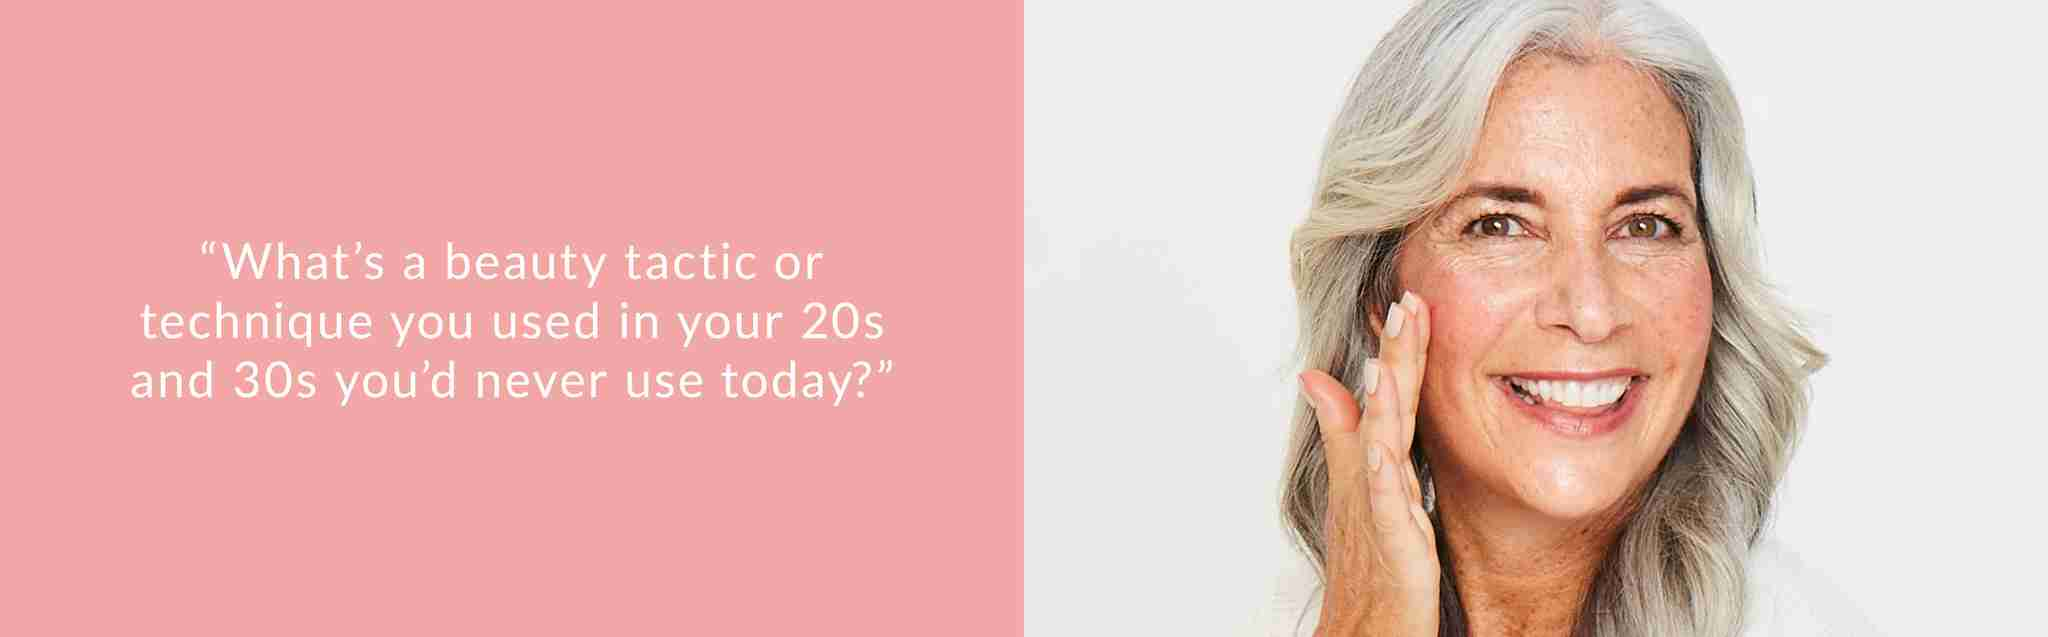 beauty tactics and techniques that were used in your 20s and 30s that you'd never use today